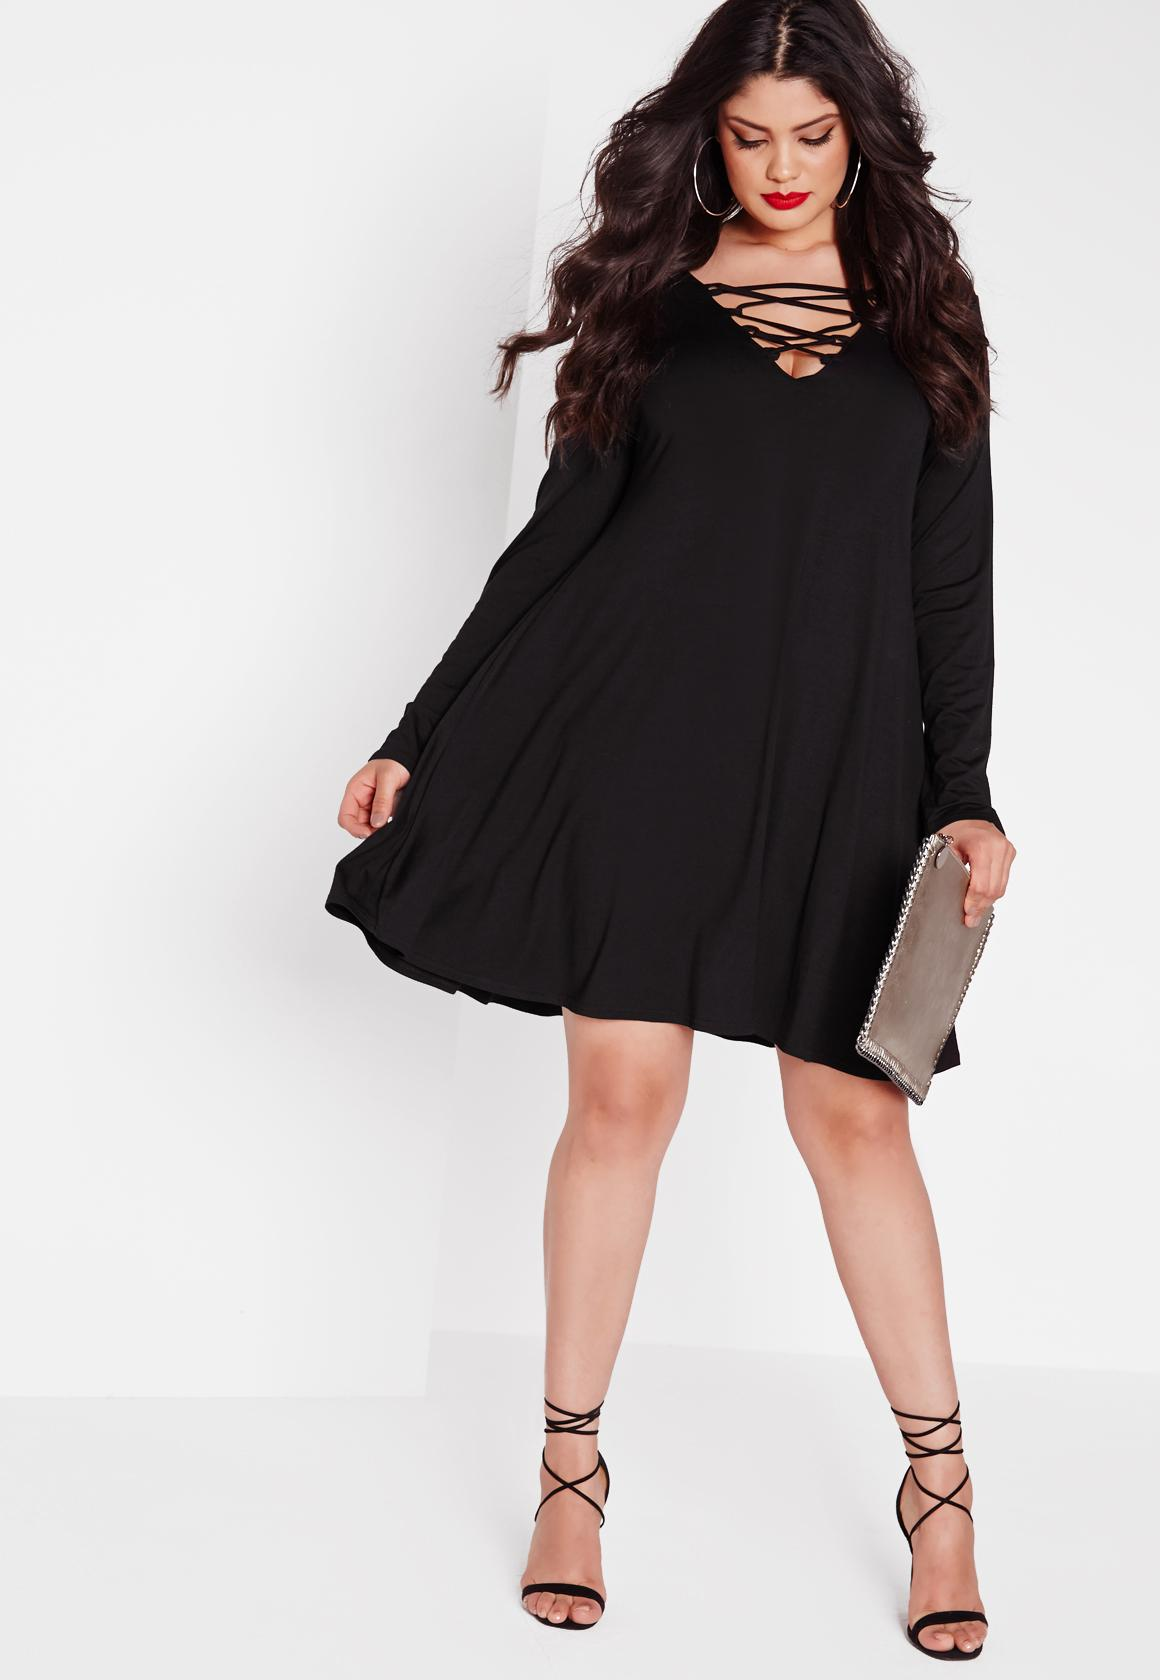 Plus-Size-Kleider - Maxi-, Party- & Abendkleider - Missguided DE